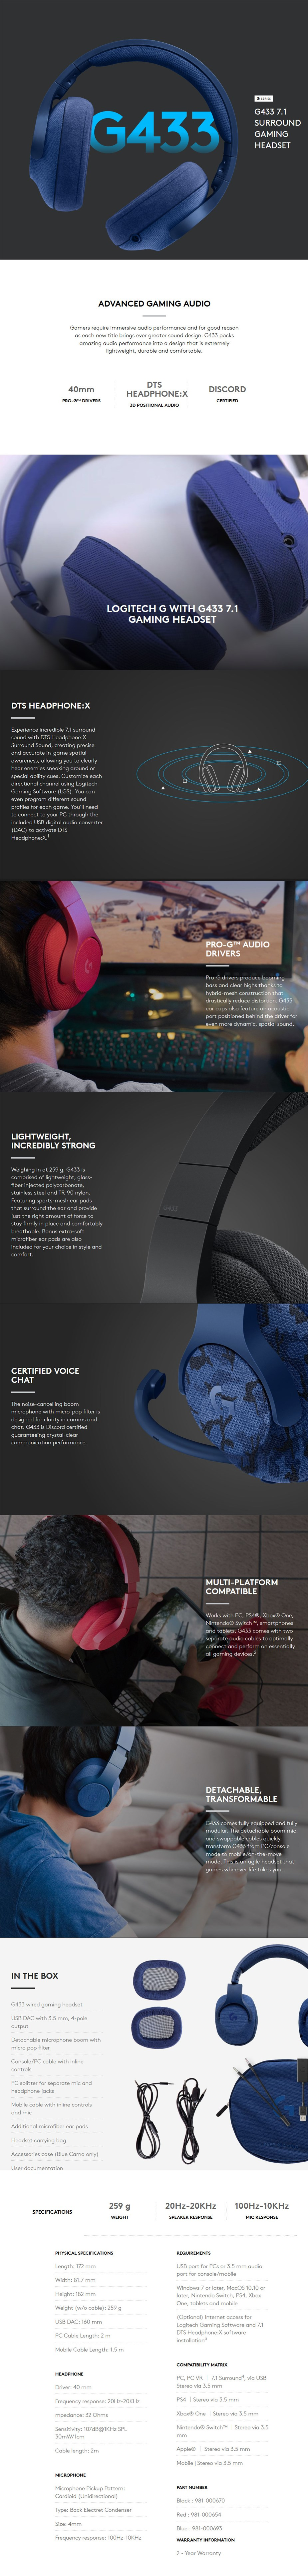 Logitech G433 7.1 Surround Wired Gaming Headset - Black Display Overview 1